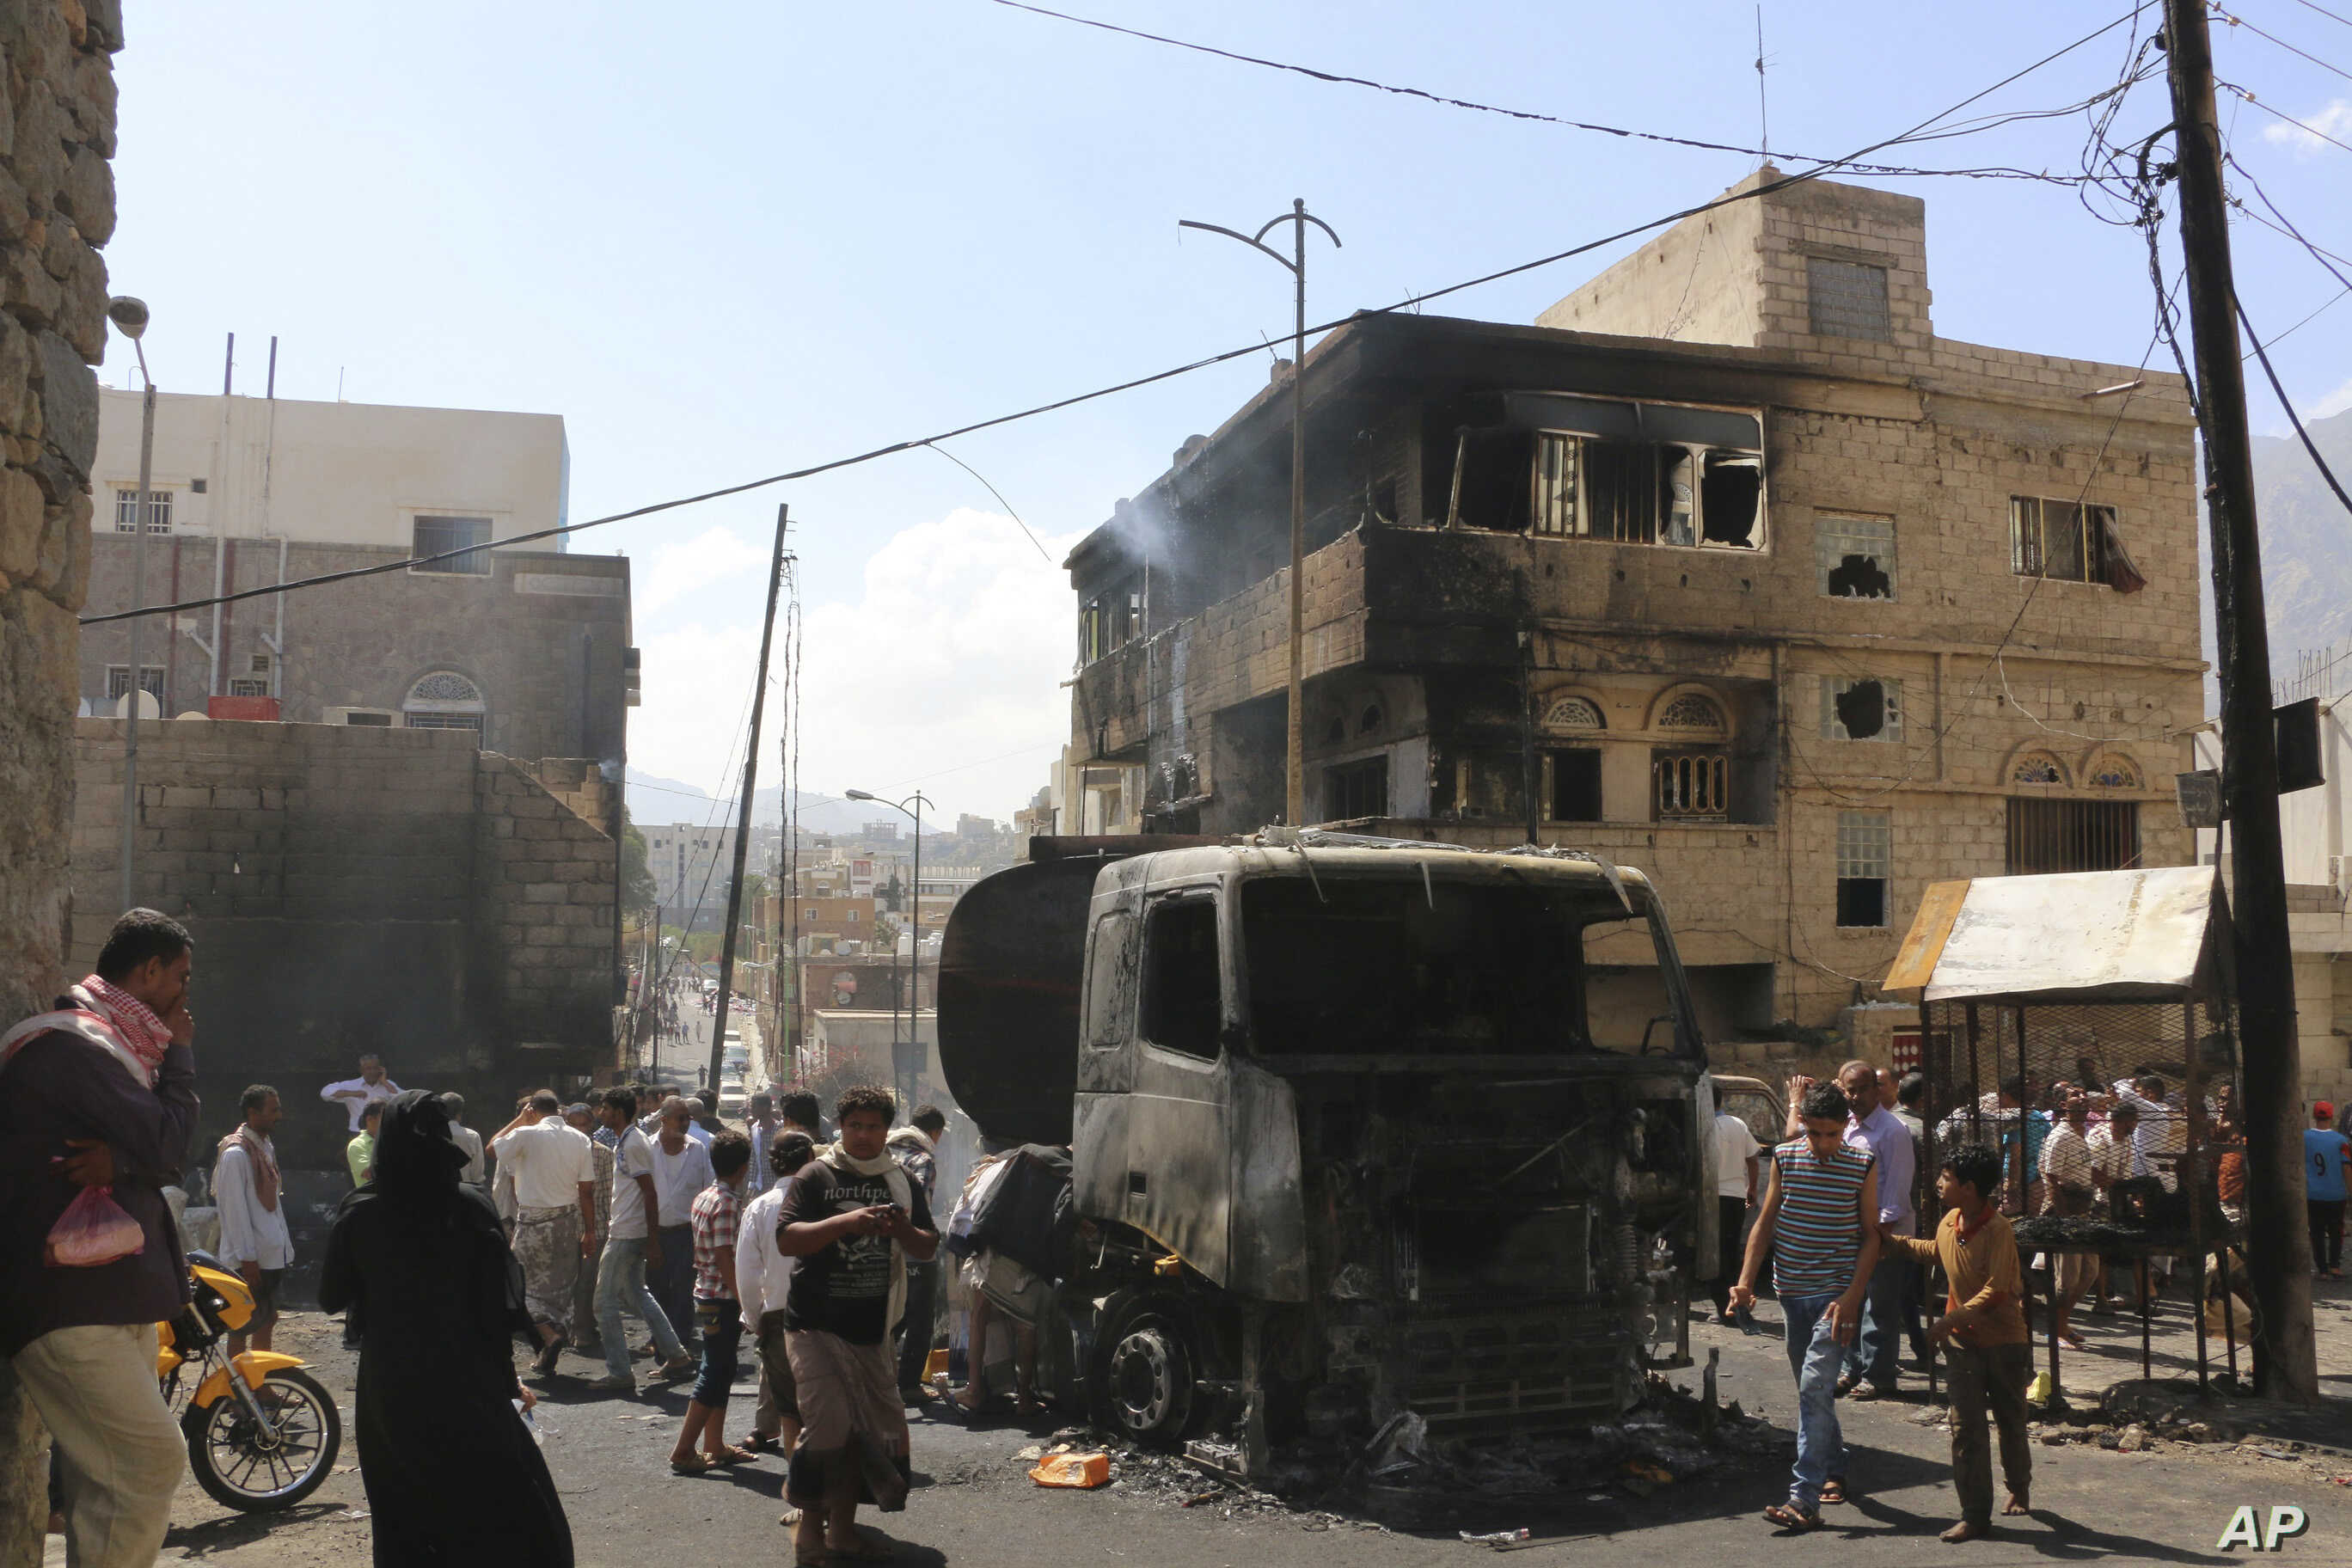 People gather around a truck carrying oil that was hit by crossfire between fighters loyal to the exiled President Abed Rabbo Mansour Hadi and Shi'ite rebels in Taiz city, Yemen, May 25, 2015.